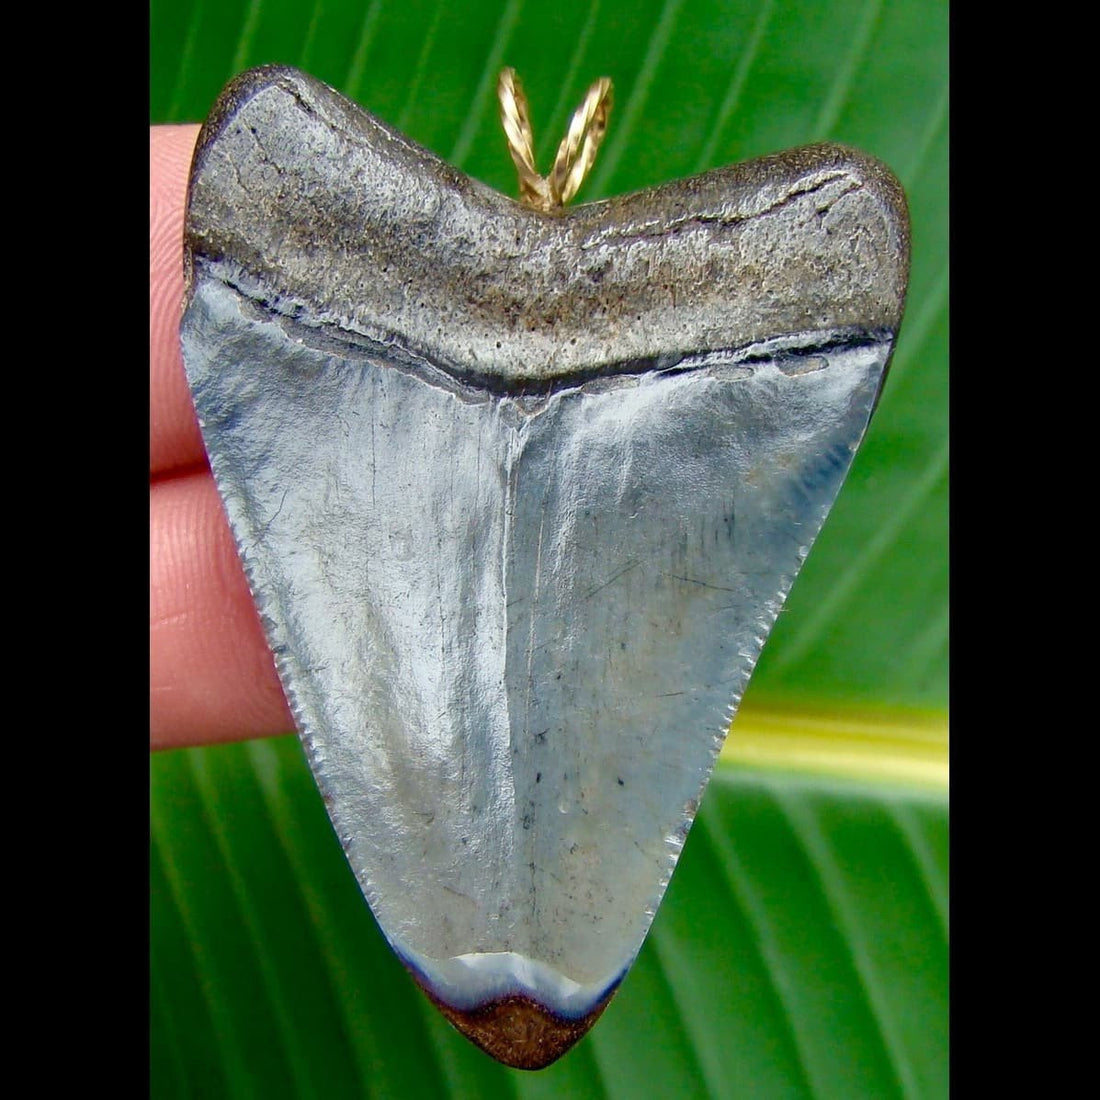 Pendants 2 & 3/16 in. * Venice Beach, Florida * Megalodon shark tooth pendant